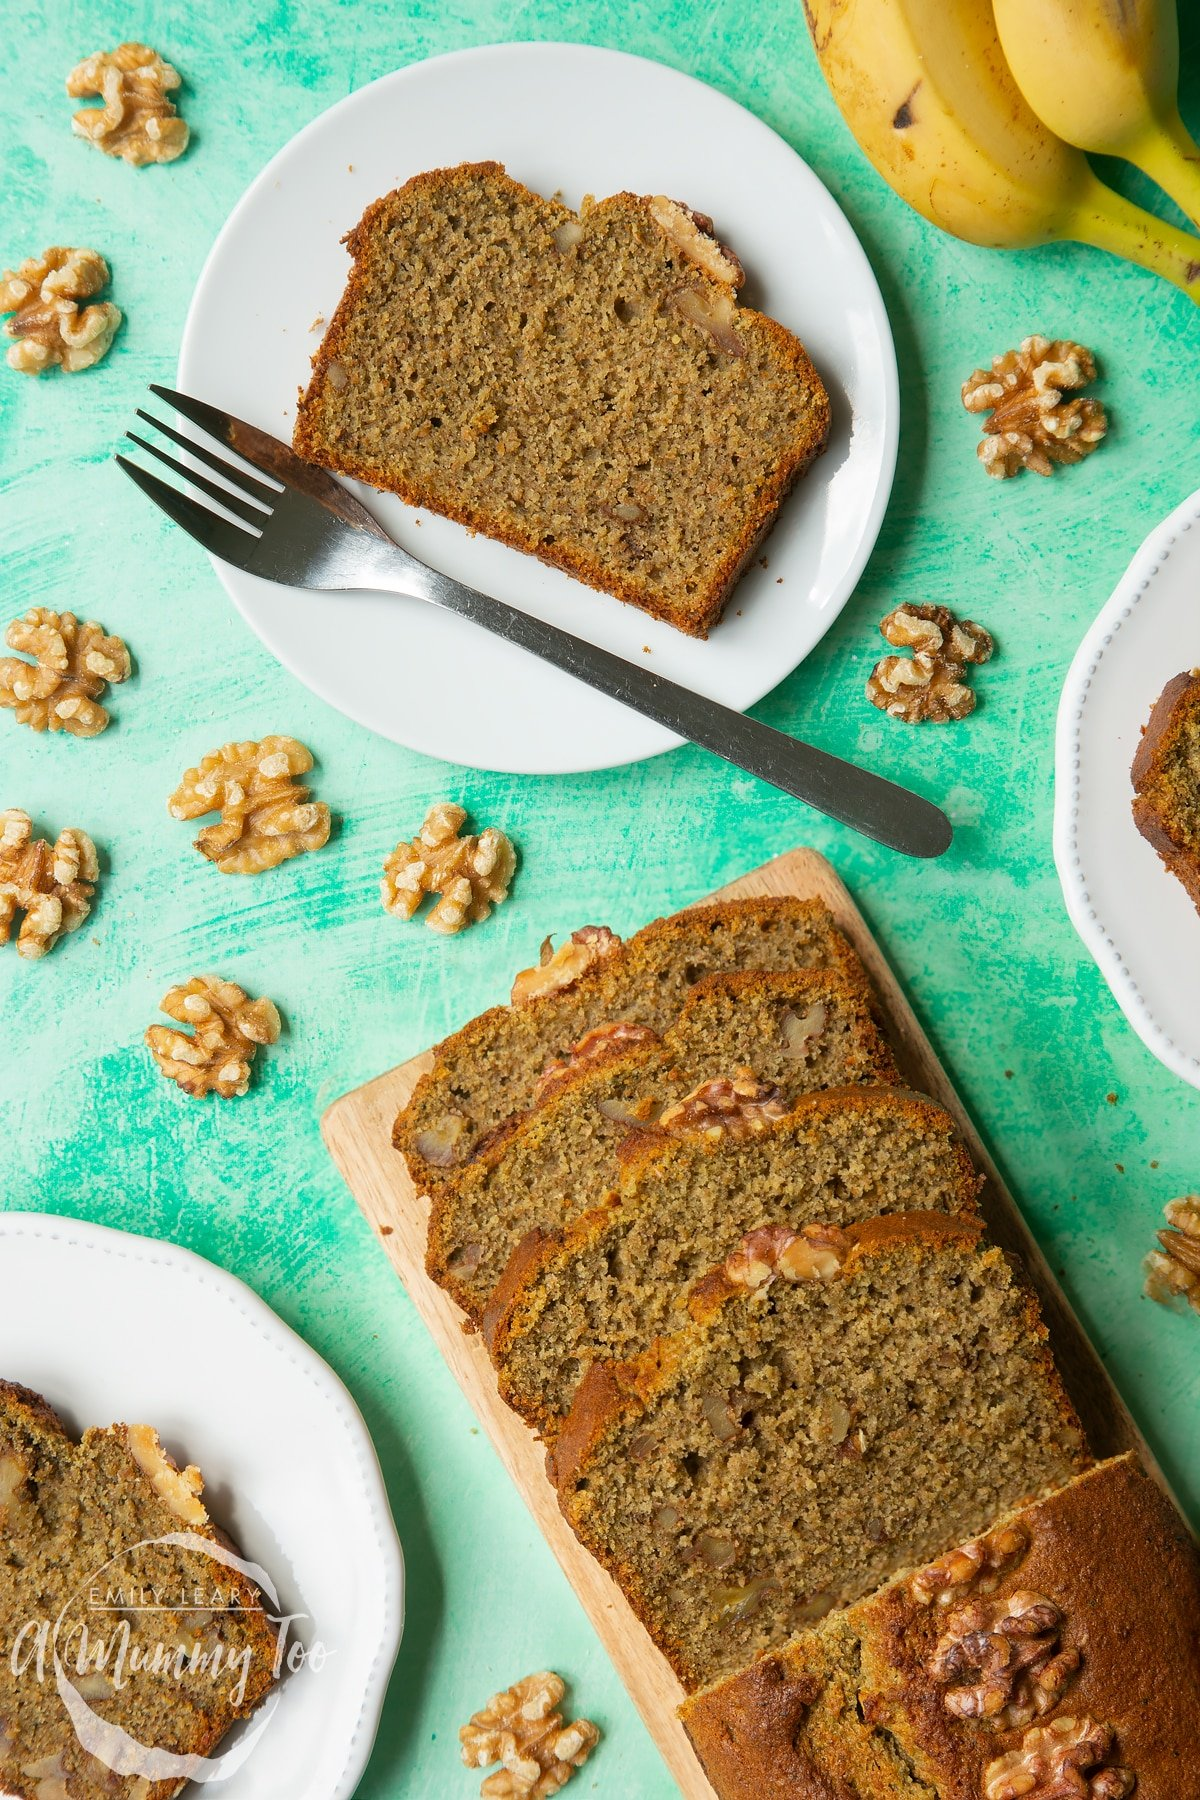 Sliced Matcha banana cake with two servings on white decorative plates.